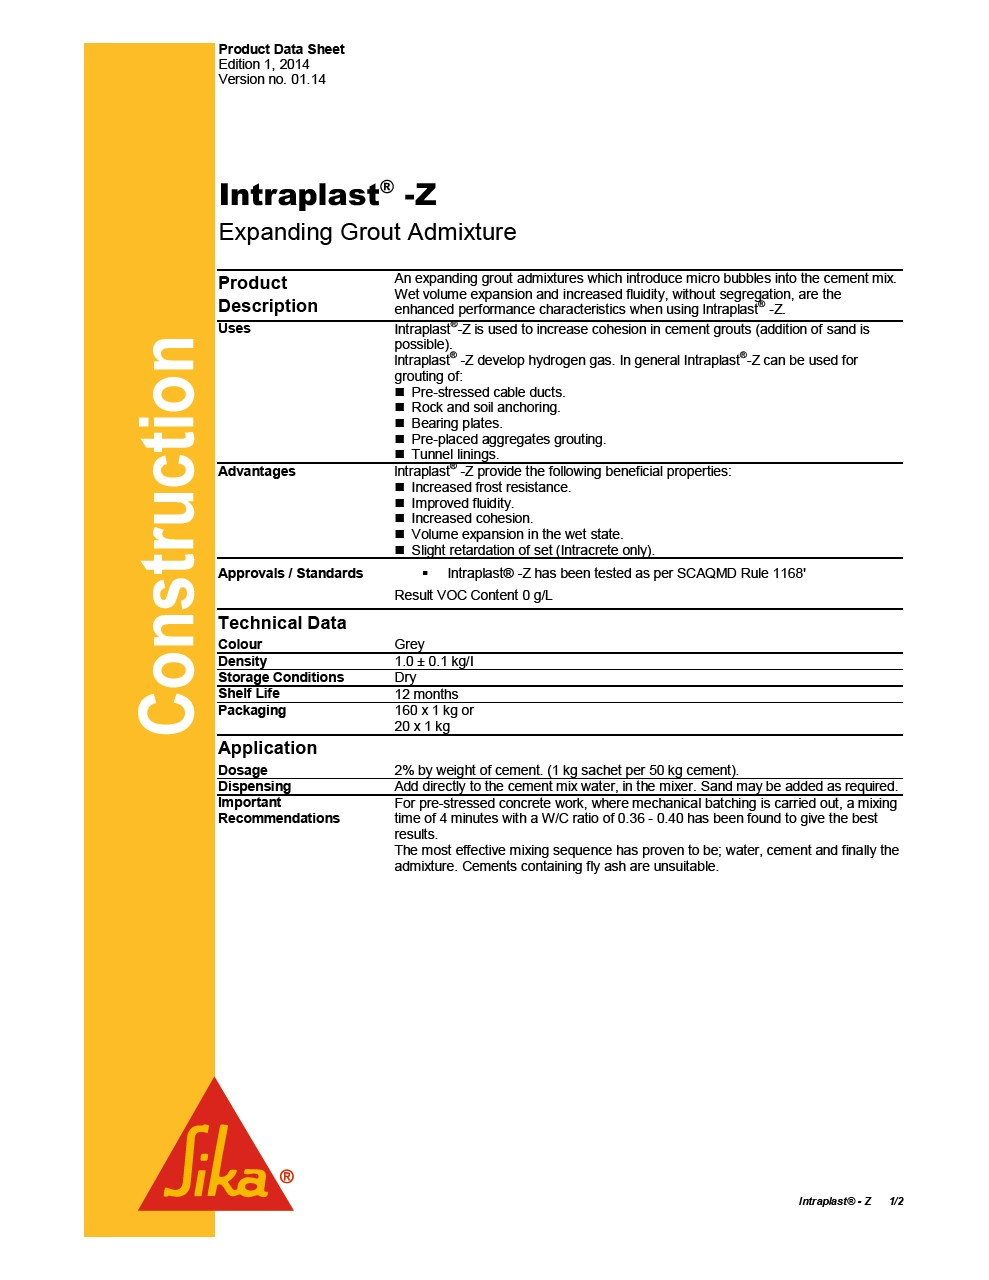 Intraplast -Z